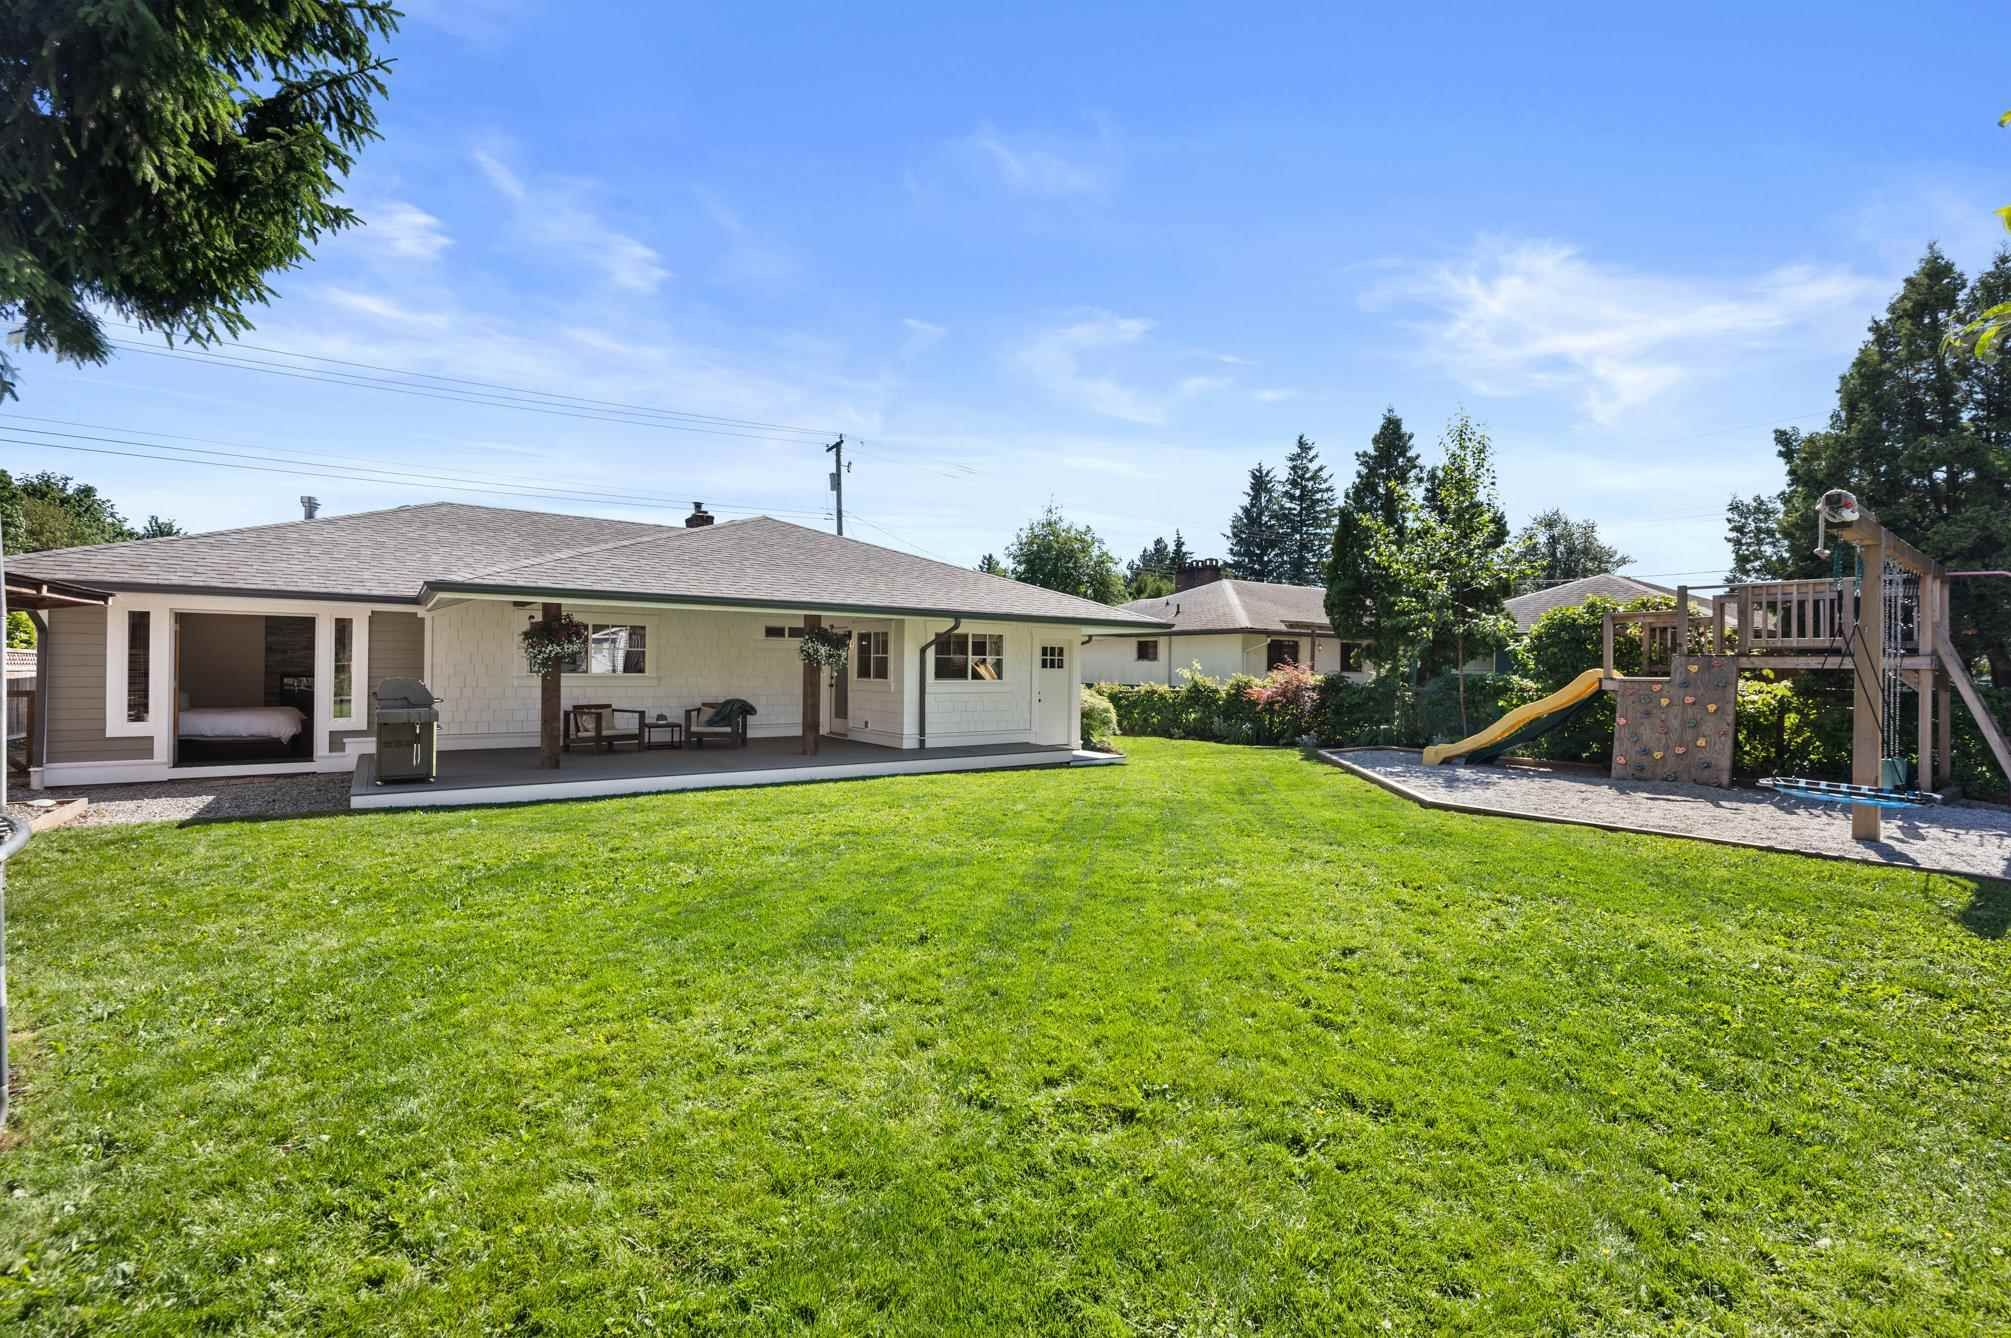 Photo 37: Photos: 32459 7TH Avenue in Mission: Mission BC House for sale : MLS®# R2595099